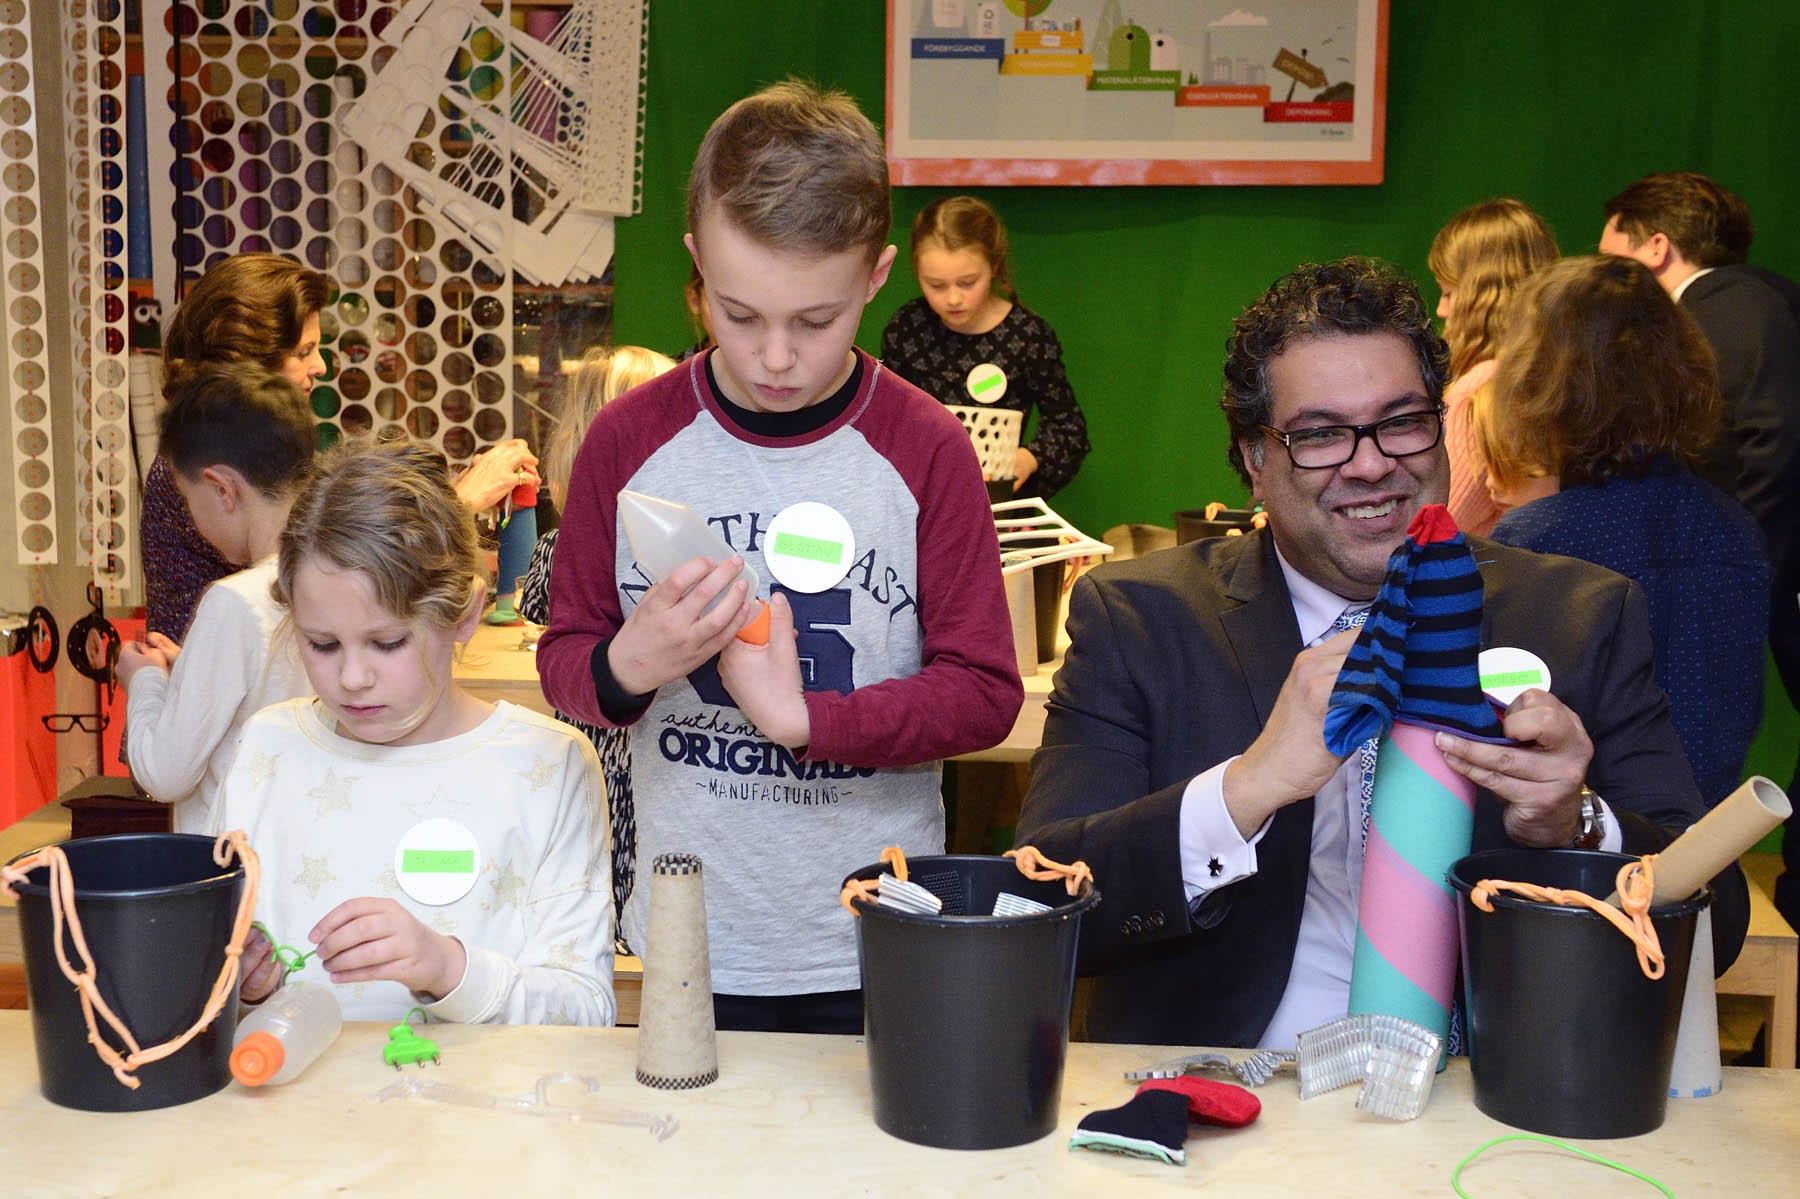 As part of their visit to återSKAPA, they participated in a creative workshop with children between the ages of 5 and 10. His Worship Naheed Nenshi, Mayor of Calgary, was one of the Canadian delegates who took part in the activity.